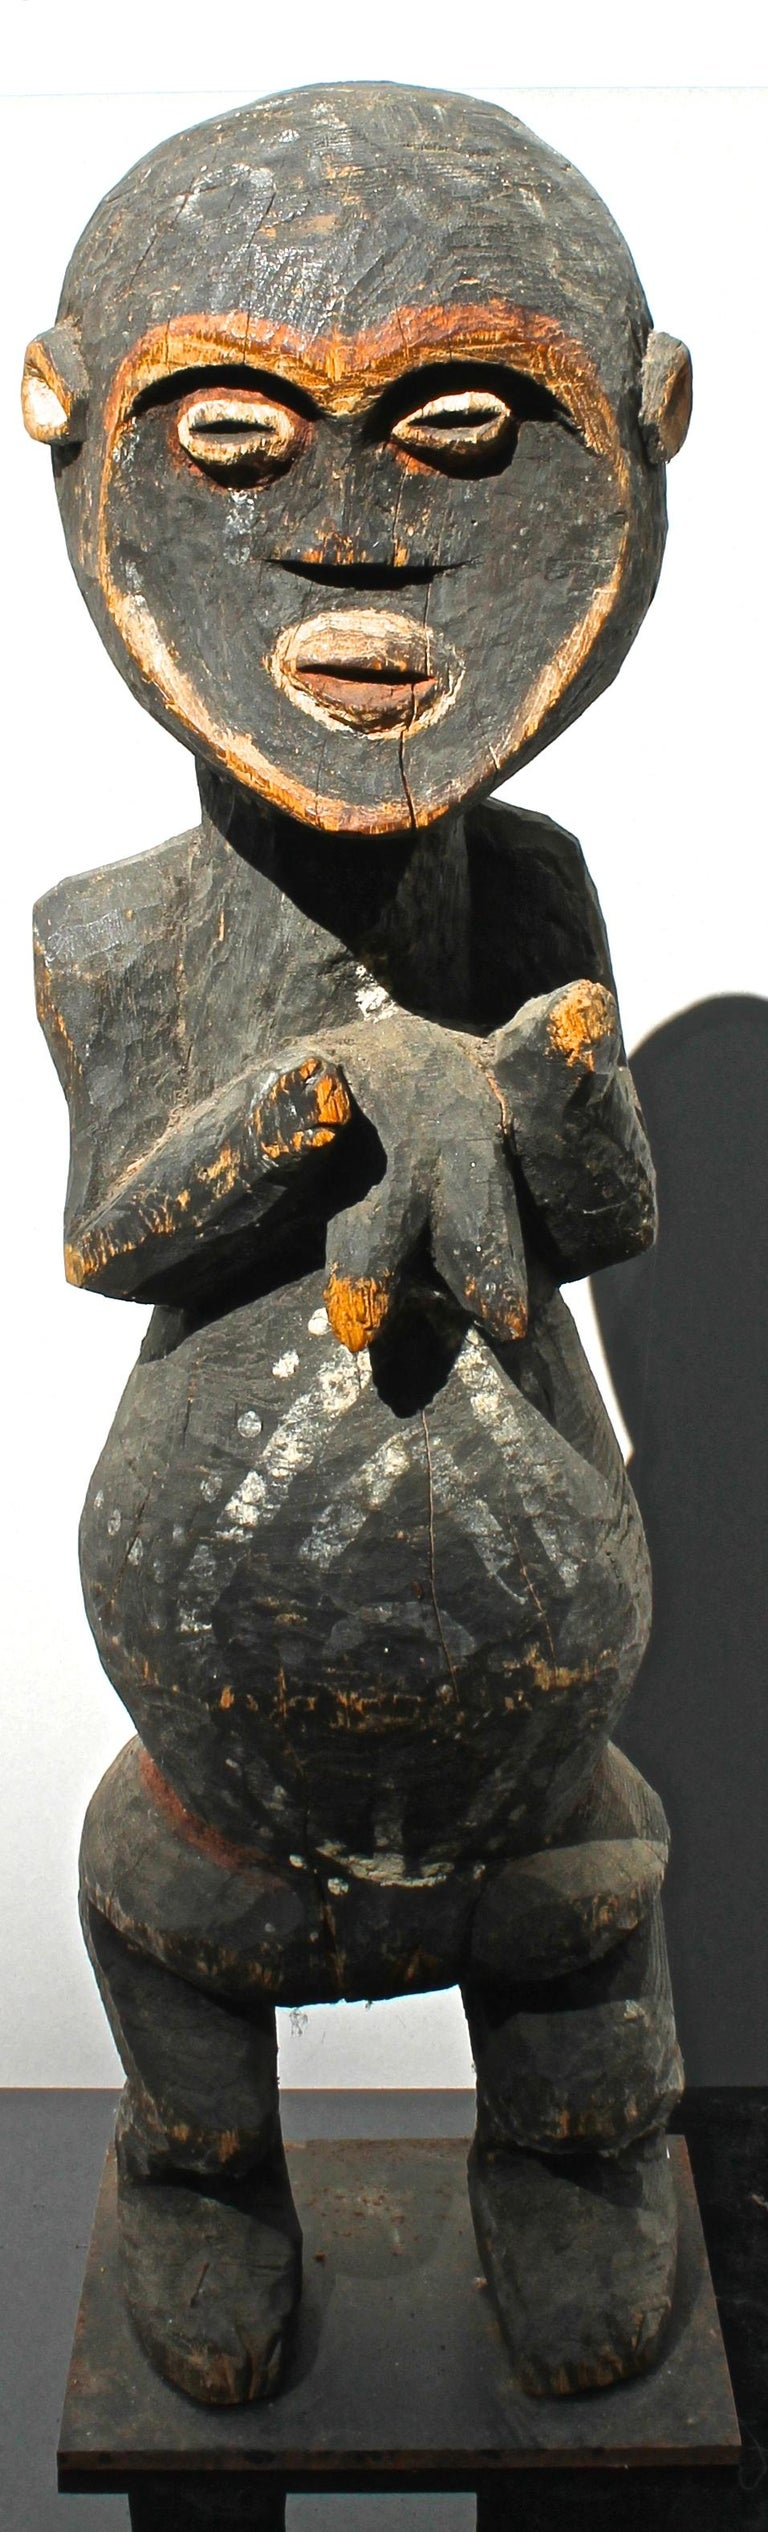 Mambila Large Female Figure African Sculpture In Good Condition For Sale In Sharon, CT